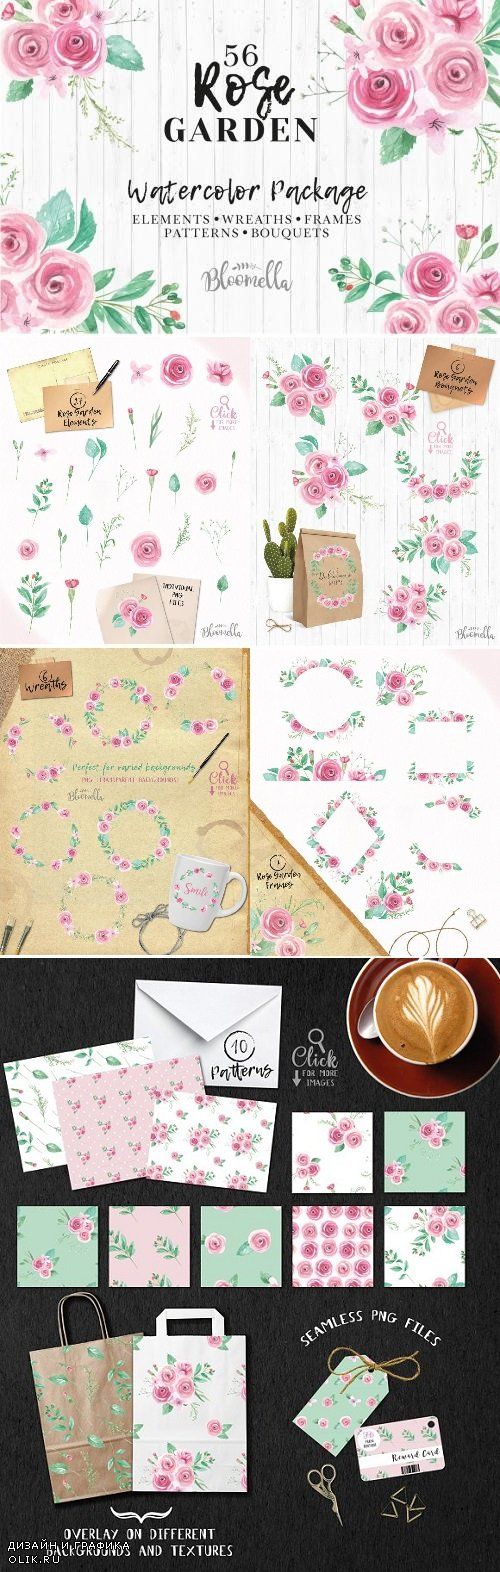 Watercolor Rose Wedding Clipart - 2316984